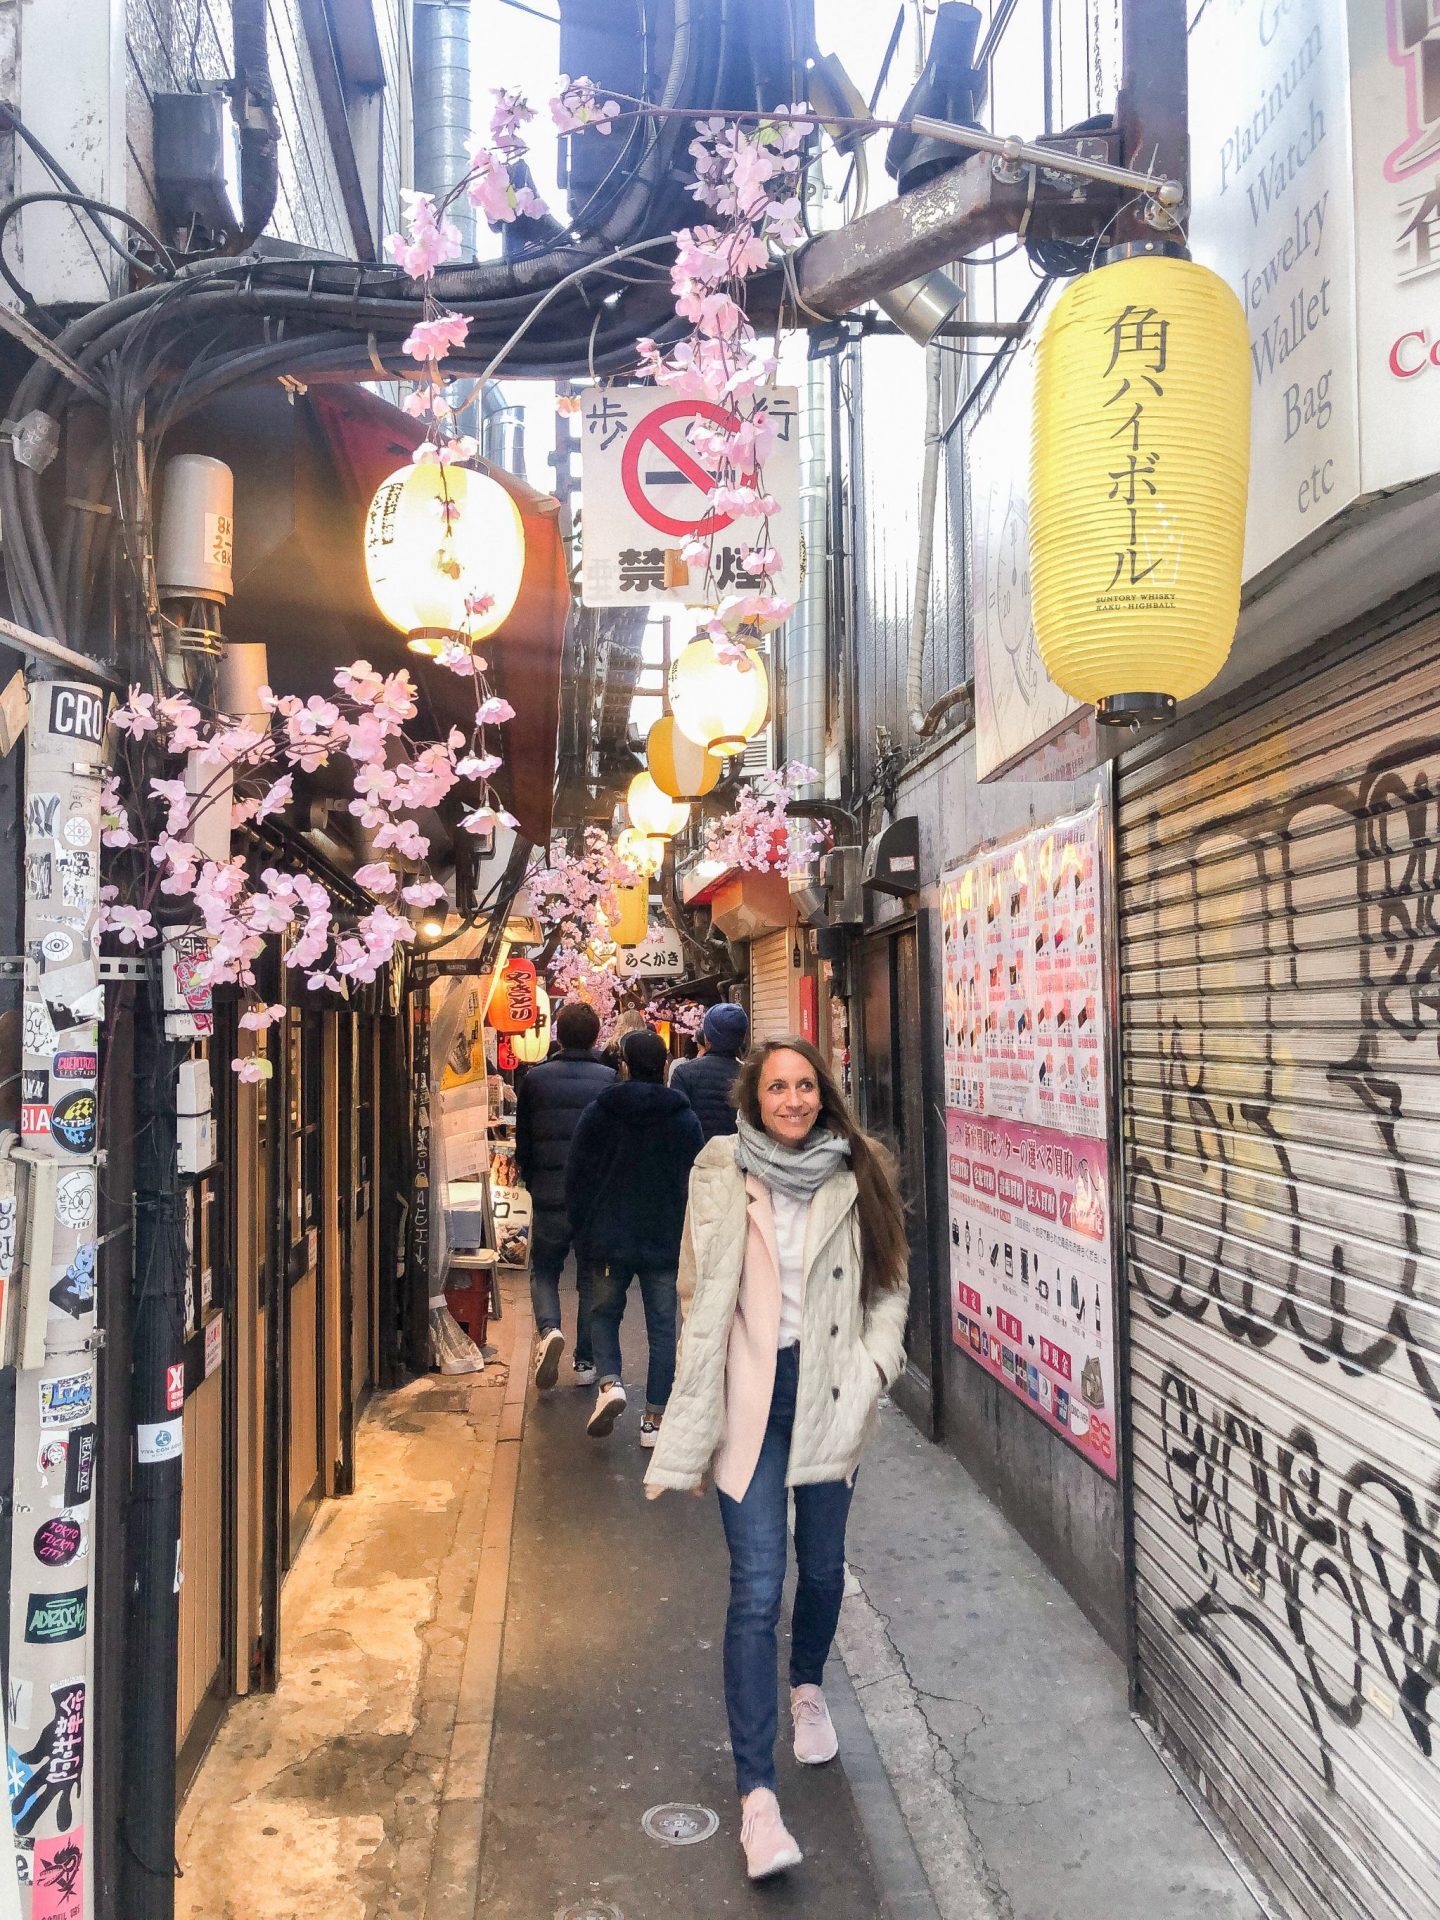 Tokyo Day 2: An Outdoor Festival, Another Shrine and Kobe Beef